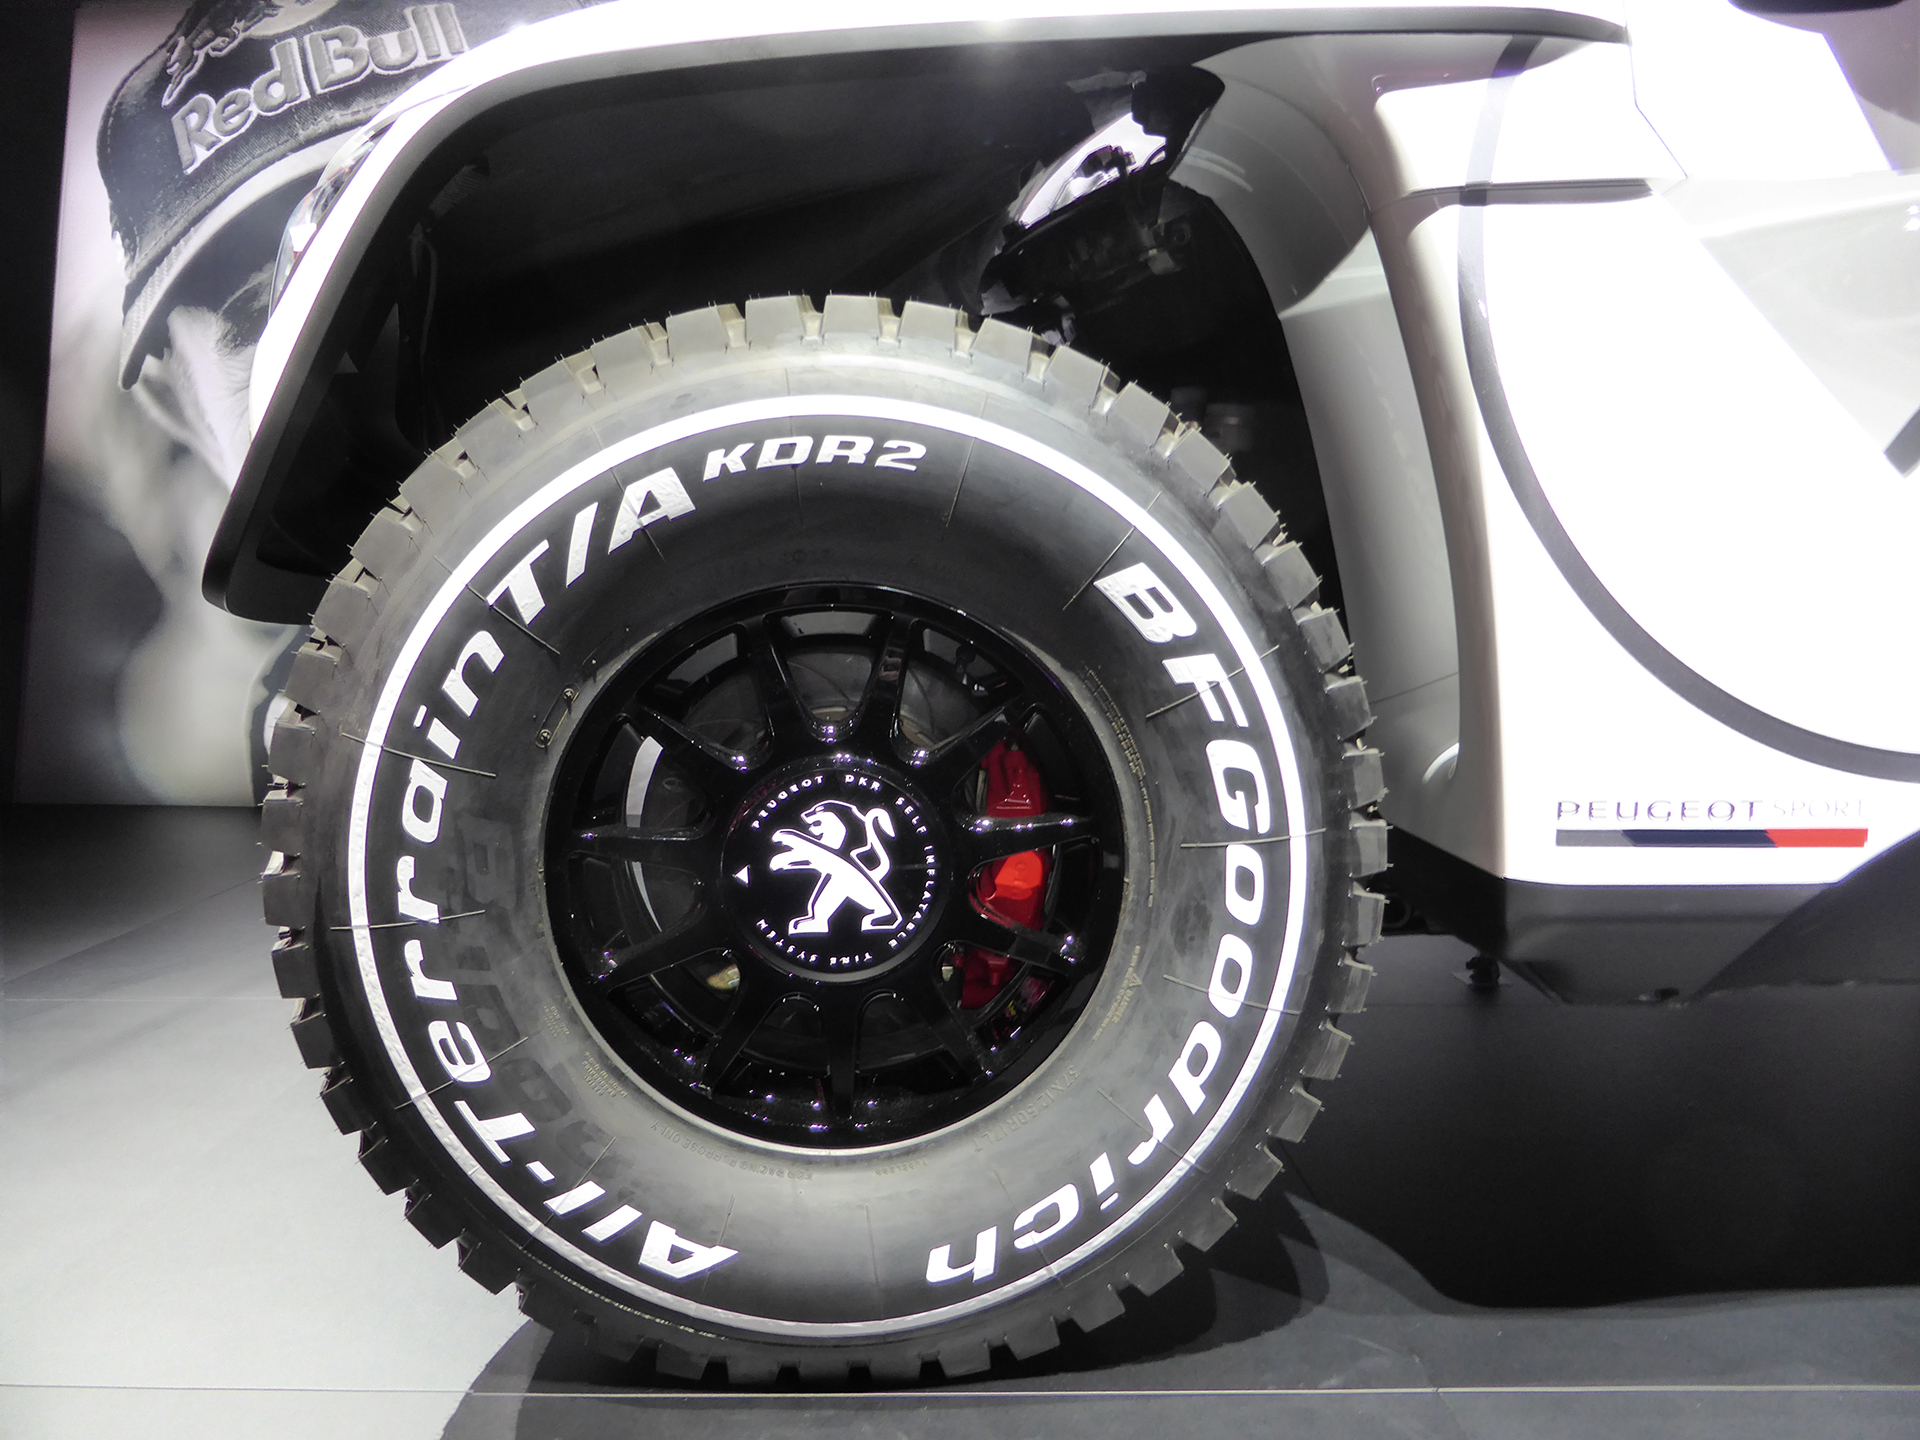 Peugeot 3008 DKR - roue / wheel - 2016 - Mondial Auto - photo ELJ DM